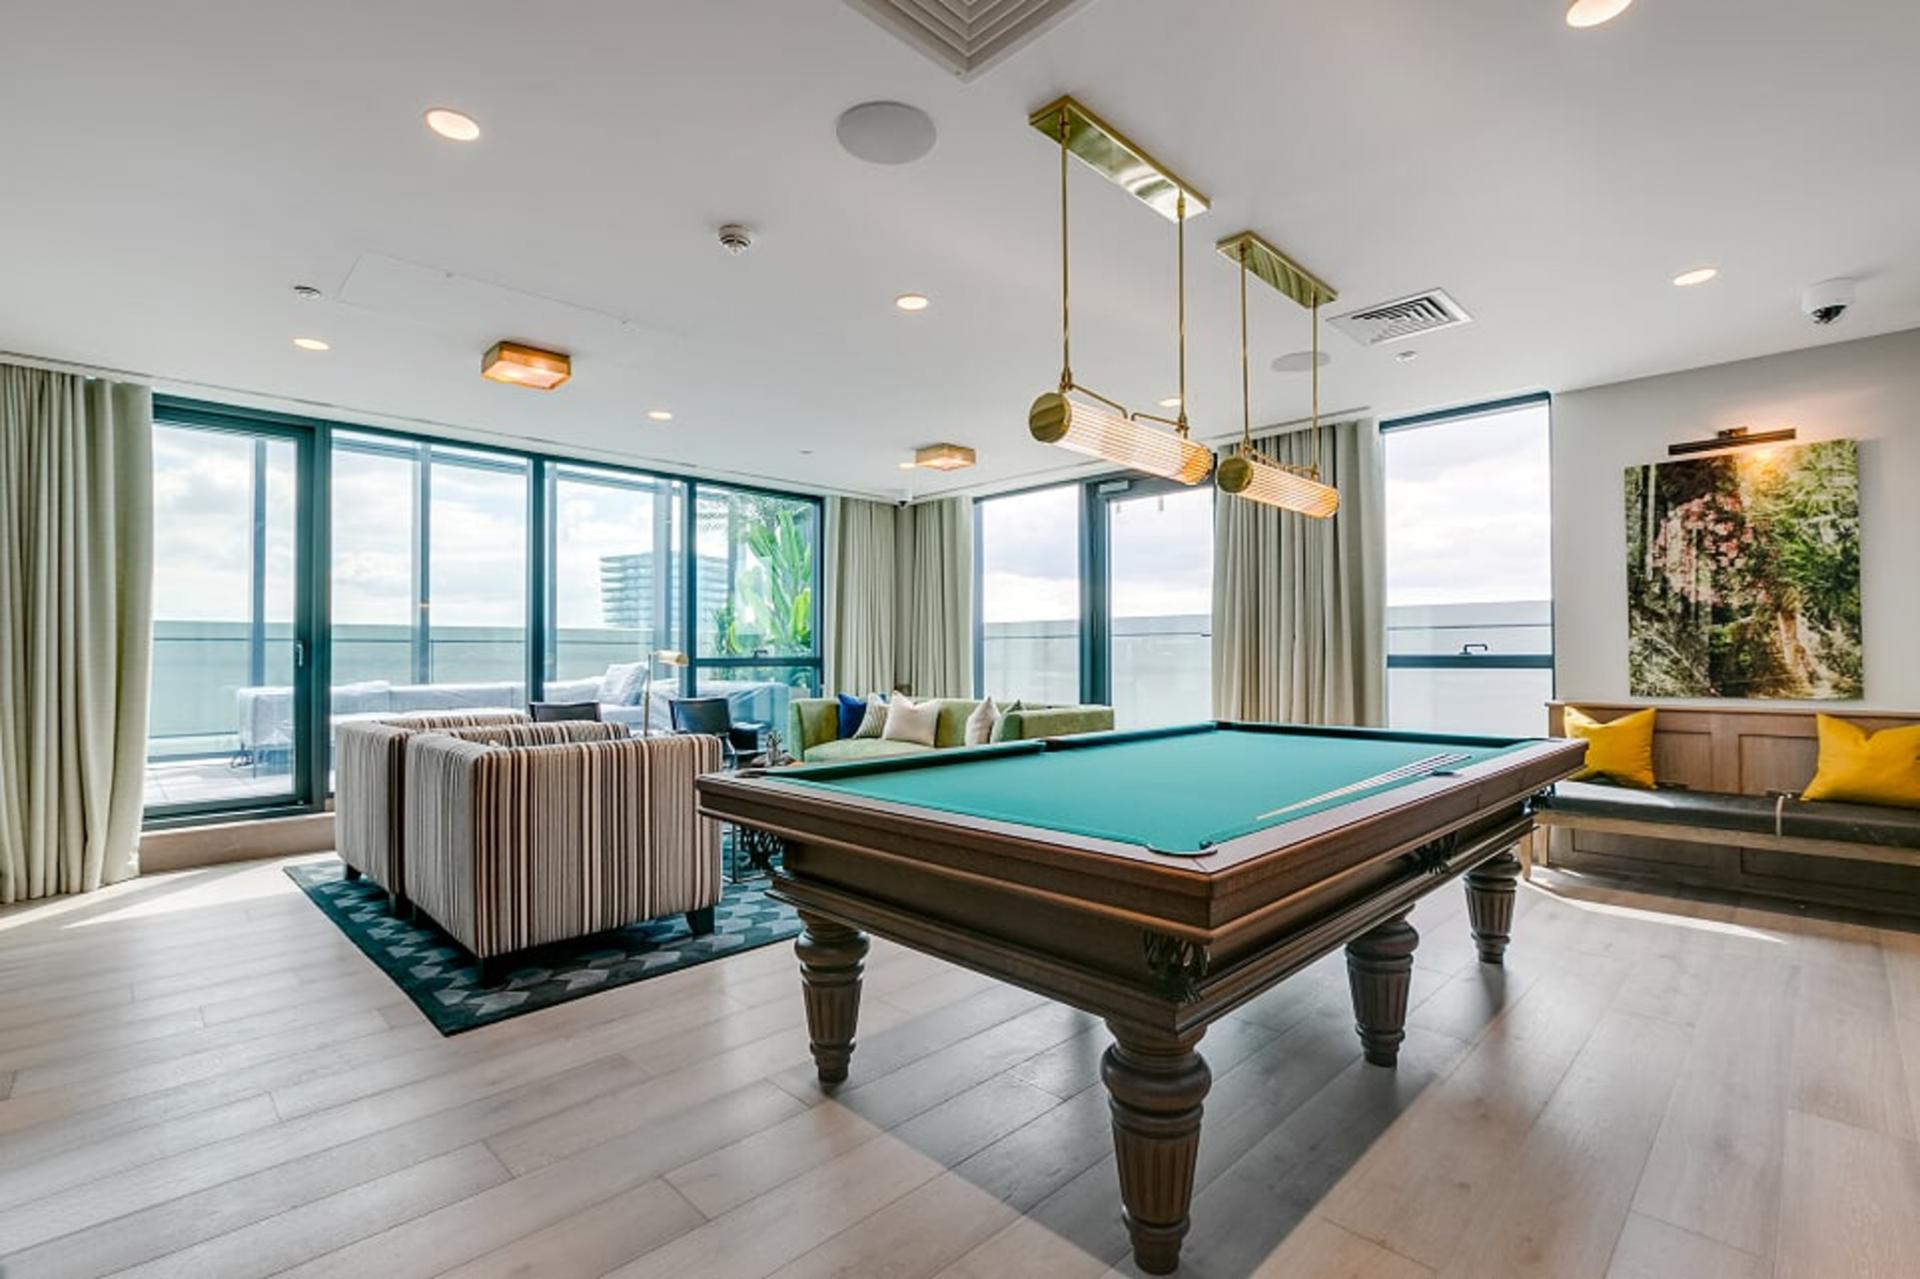 Snooker room at Canary Wharf Apartments By Charles Hope, Canary Wharf, London - Citybase Apartments